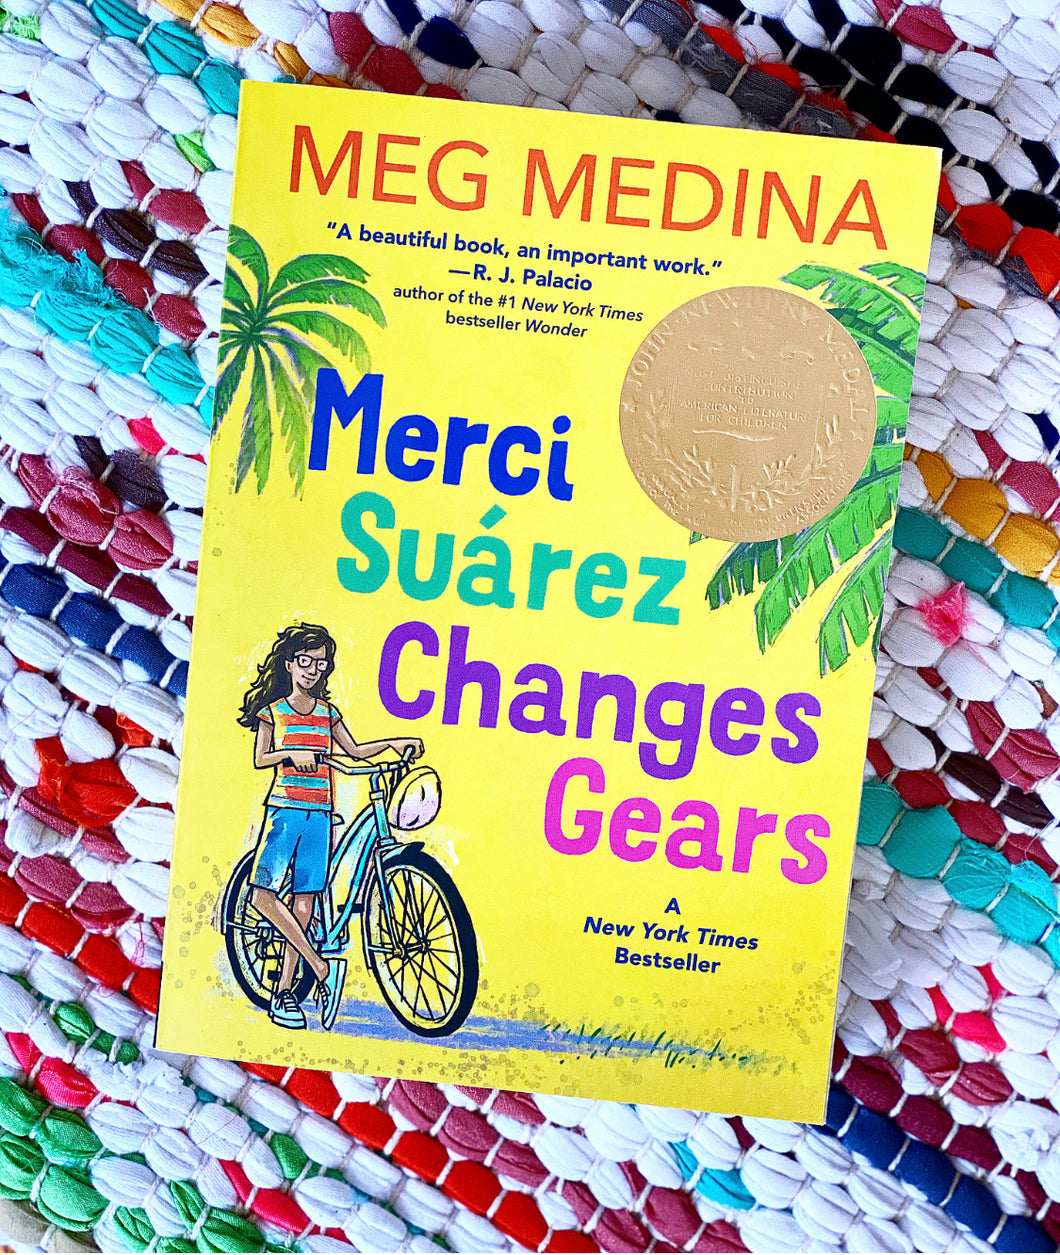 Merci Suarez Changes Gears | Meg Medina